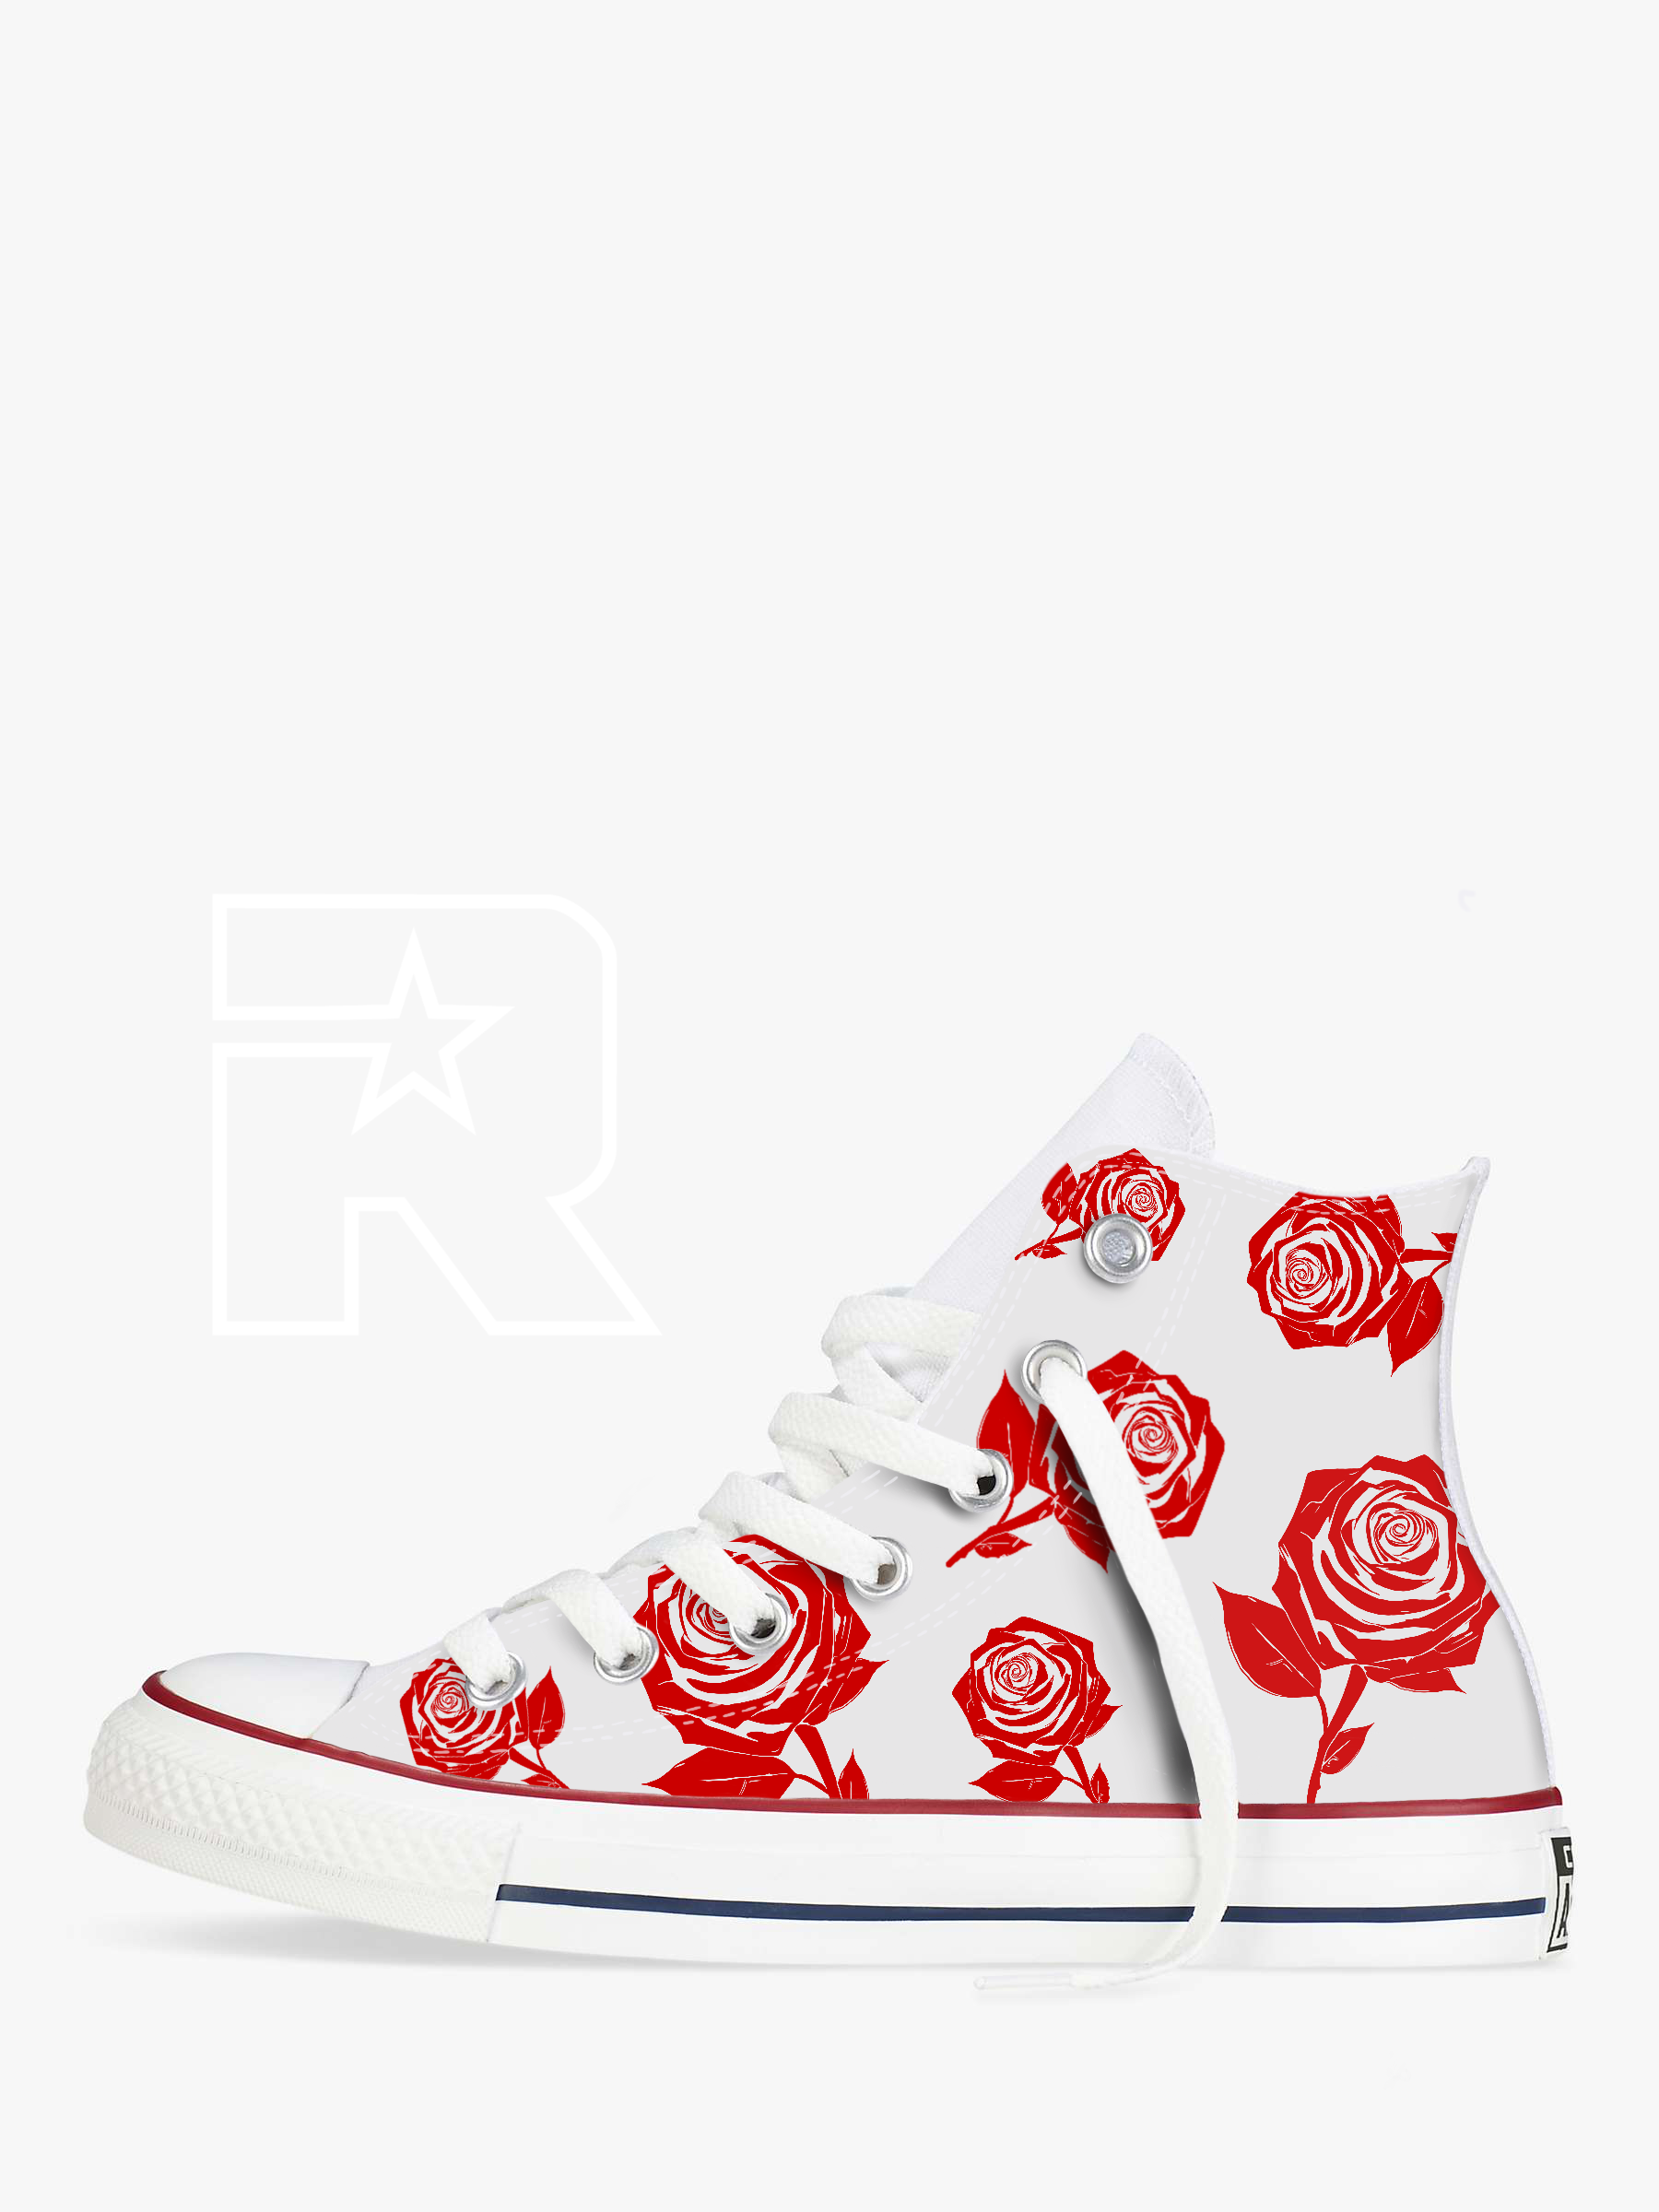 Rosie Posie High Top Converse